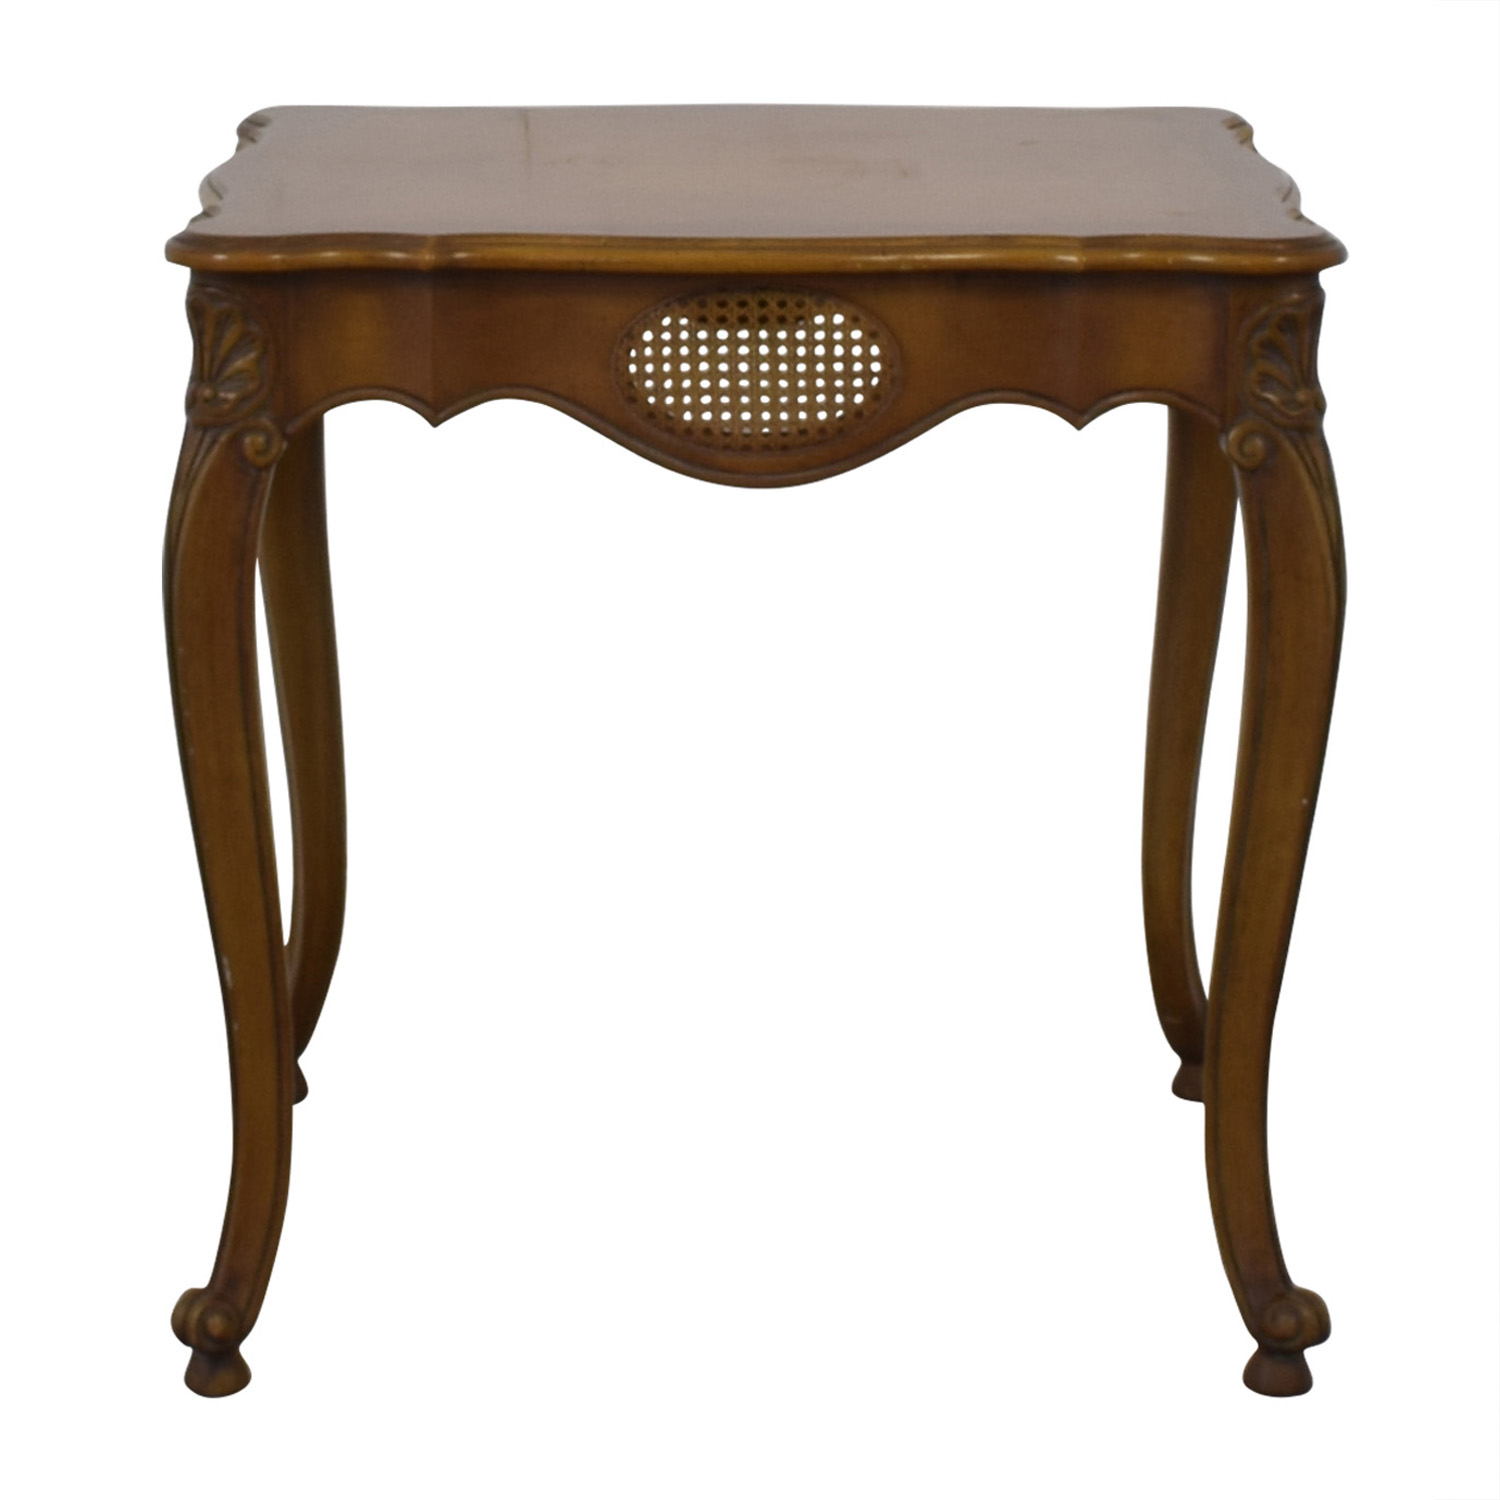 French Provincial Cane Weave Accent Table coupon